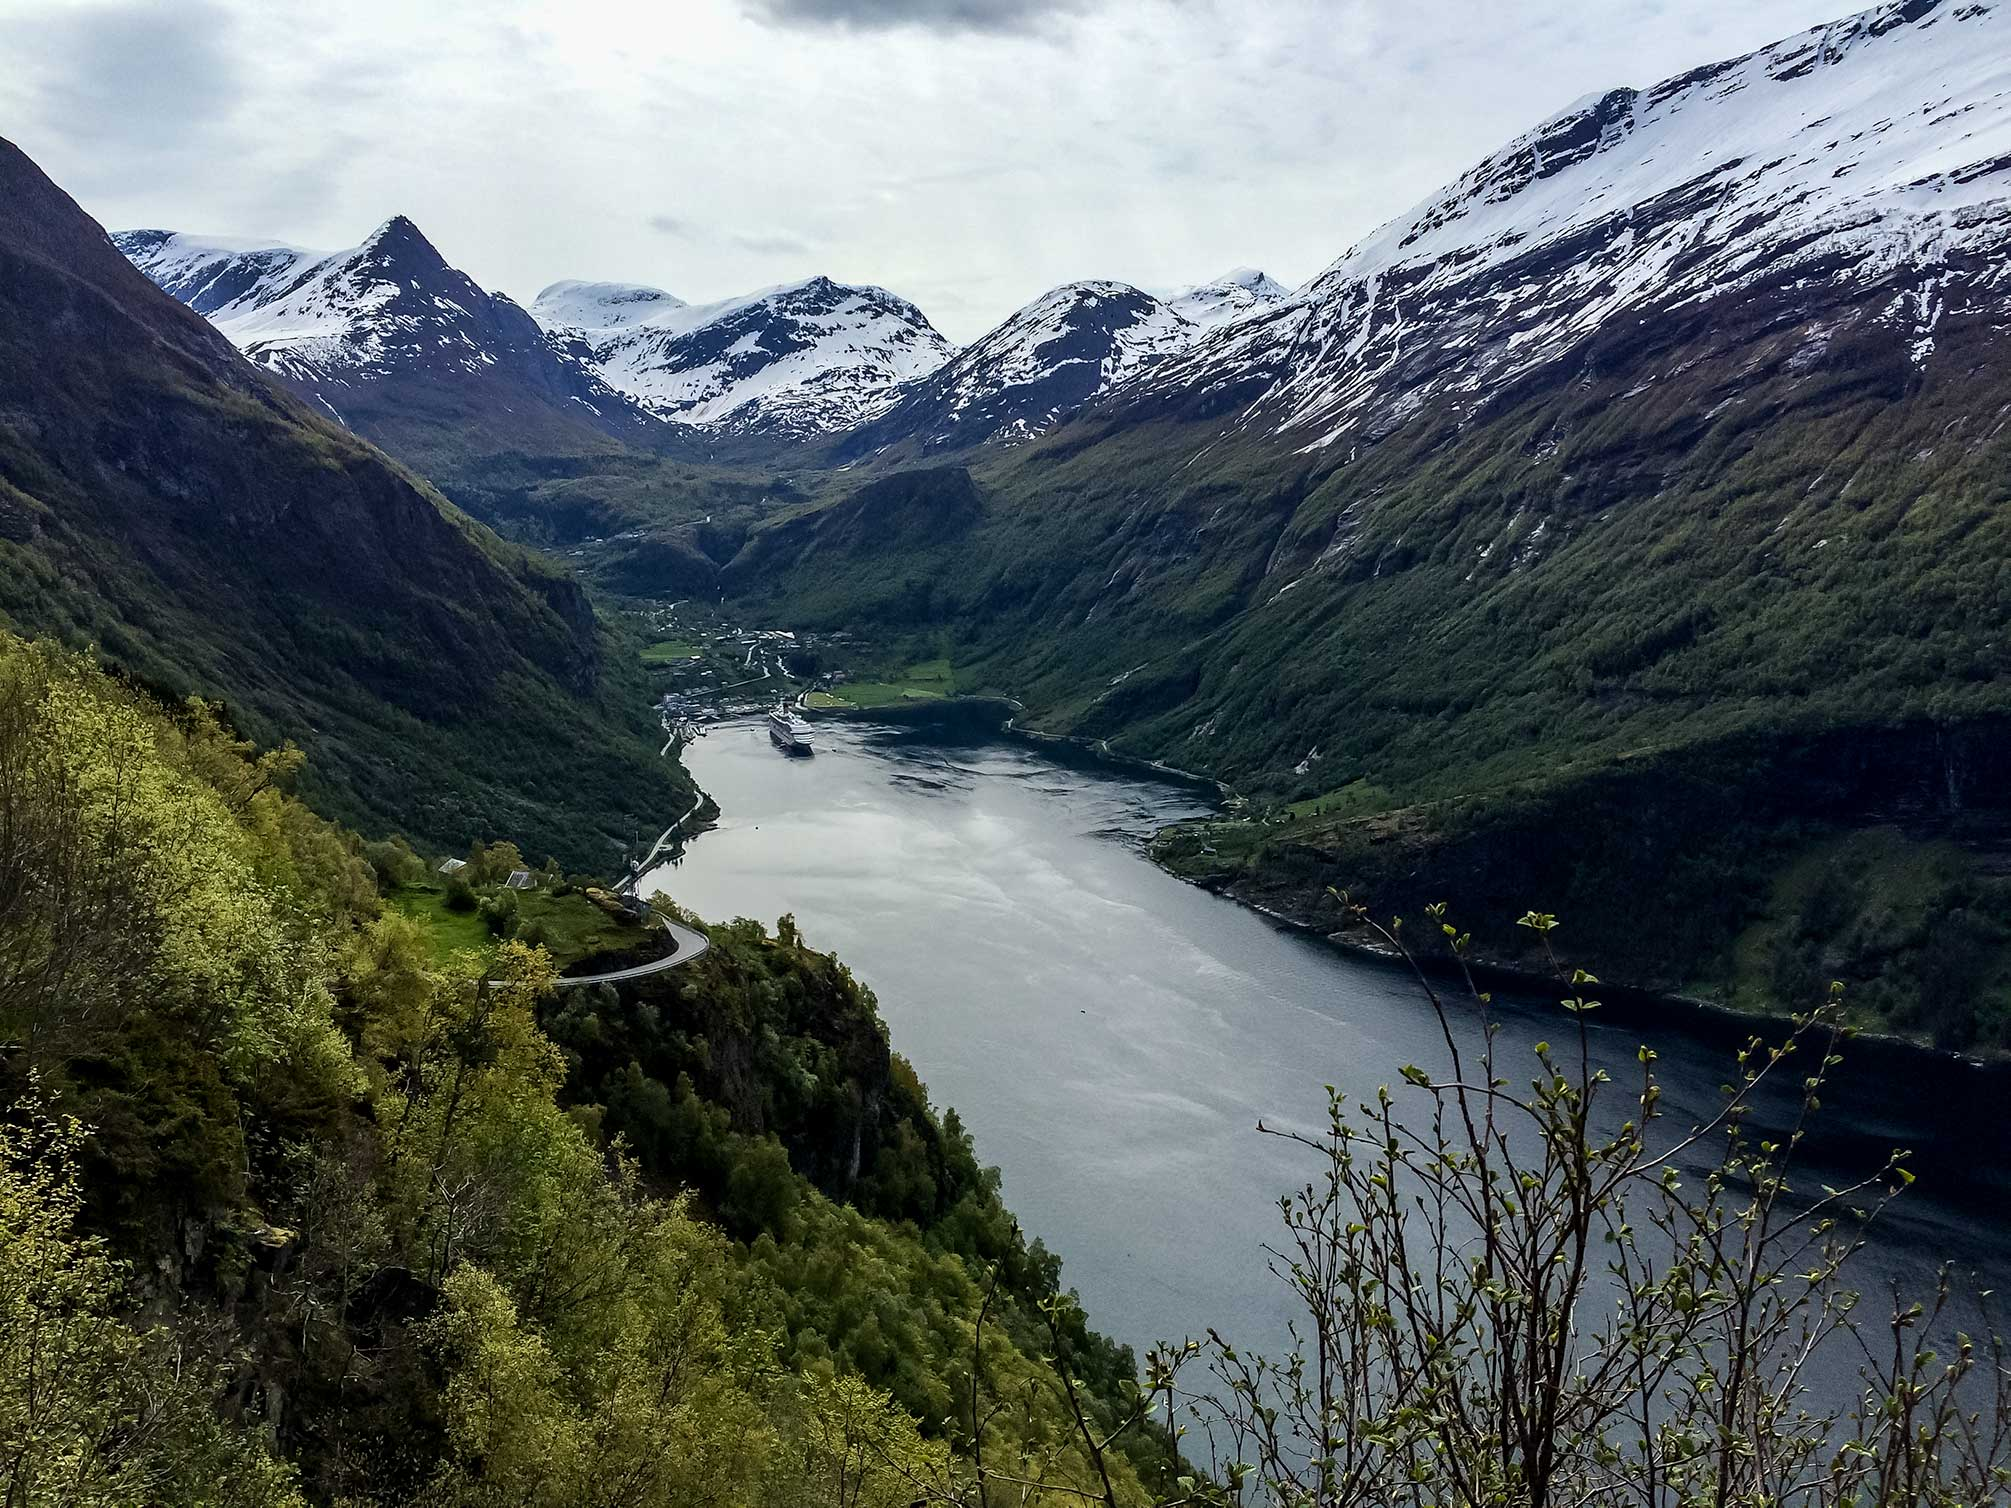 Norway. Not far from where Ekornes manufacturers Stressless recliners and sofas.